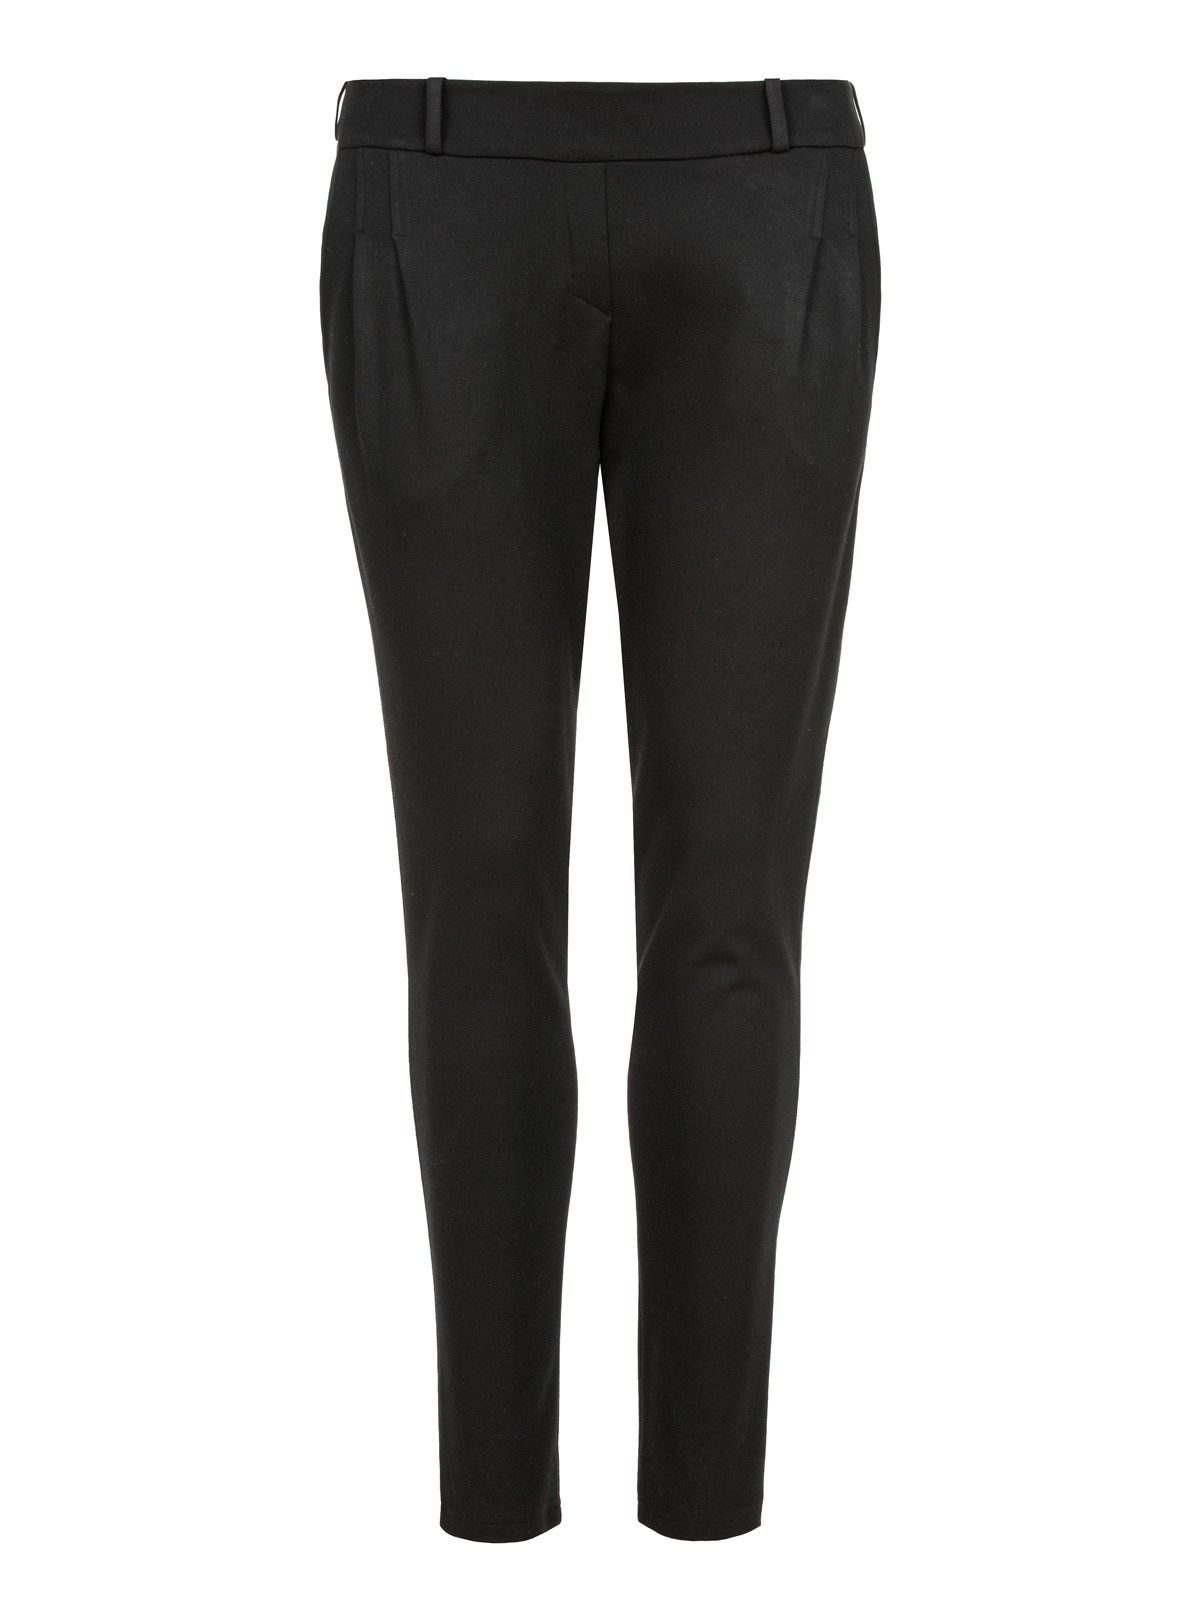 Hosen - Vive Maria Black Basic Pants black – Größe 2L  - Onlineshop NAPO Shop